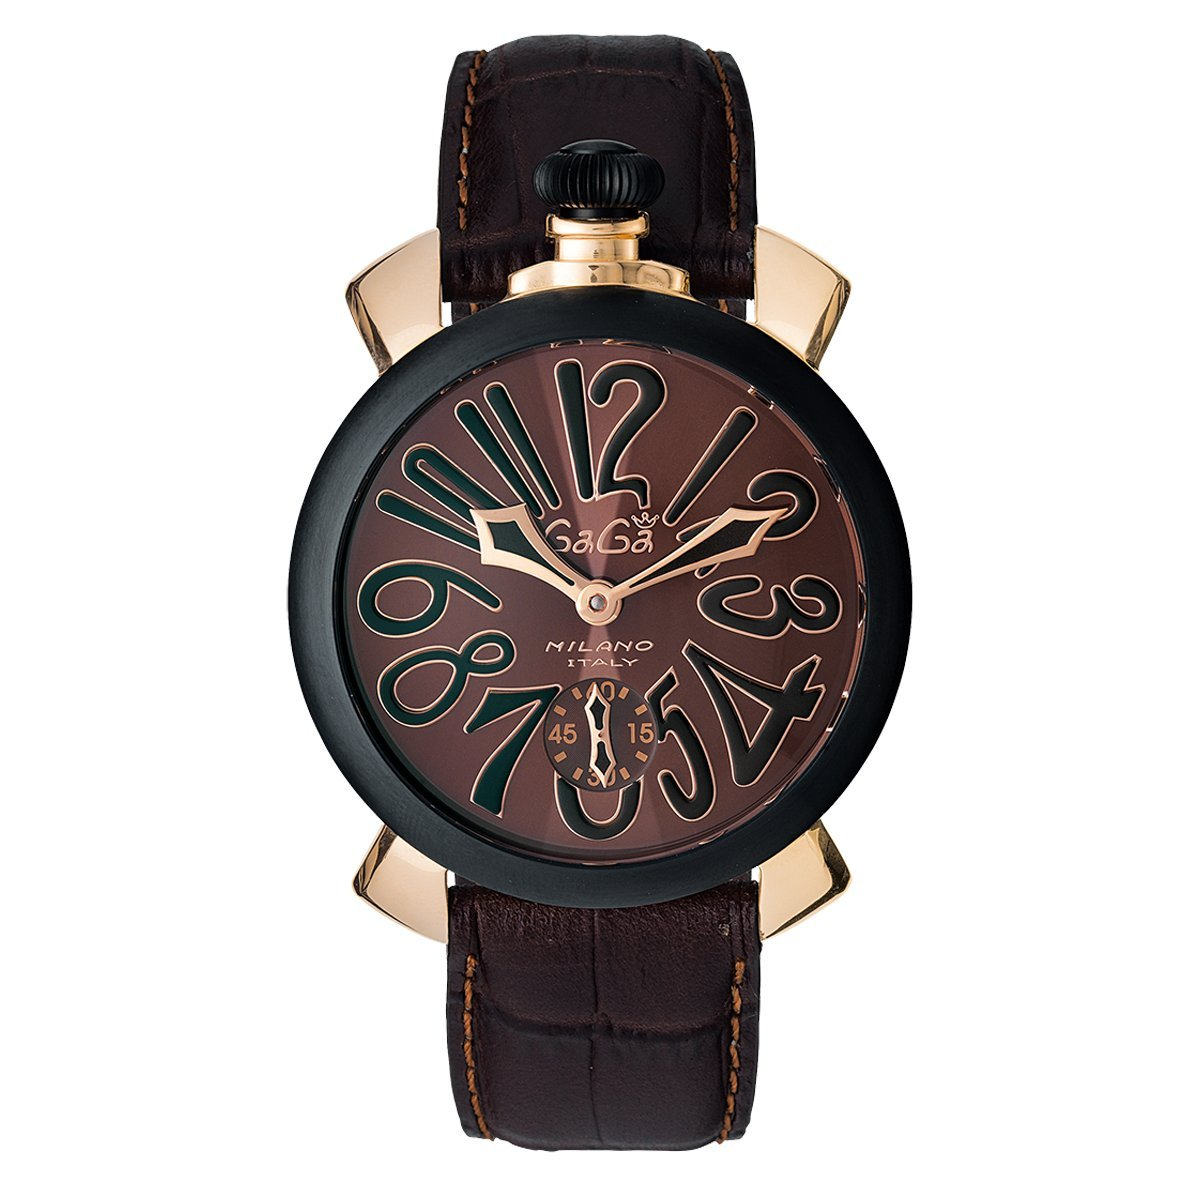 GaGà Milano Manuale 48MM Rose Gold Chocolate - Watches & Crystals